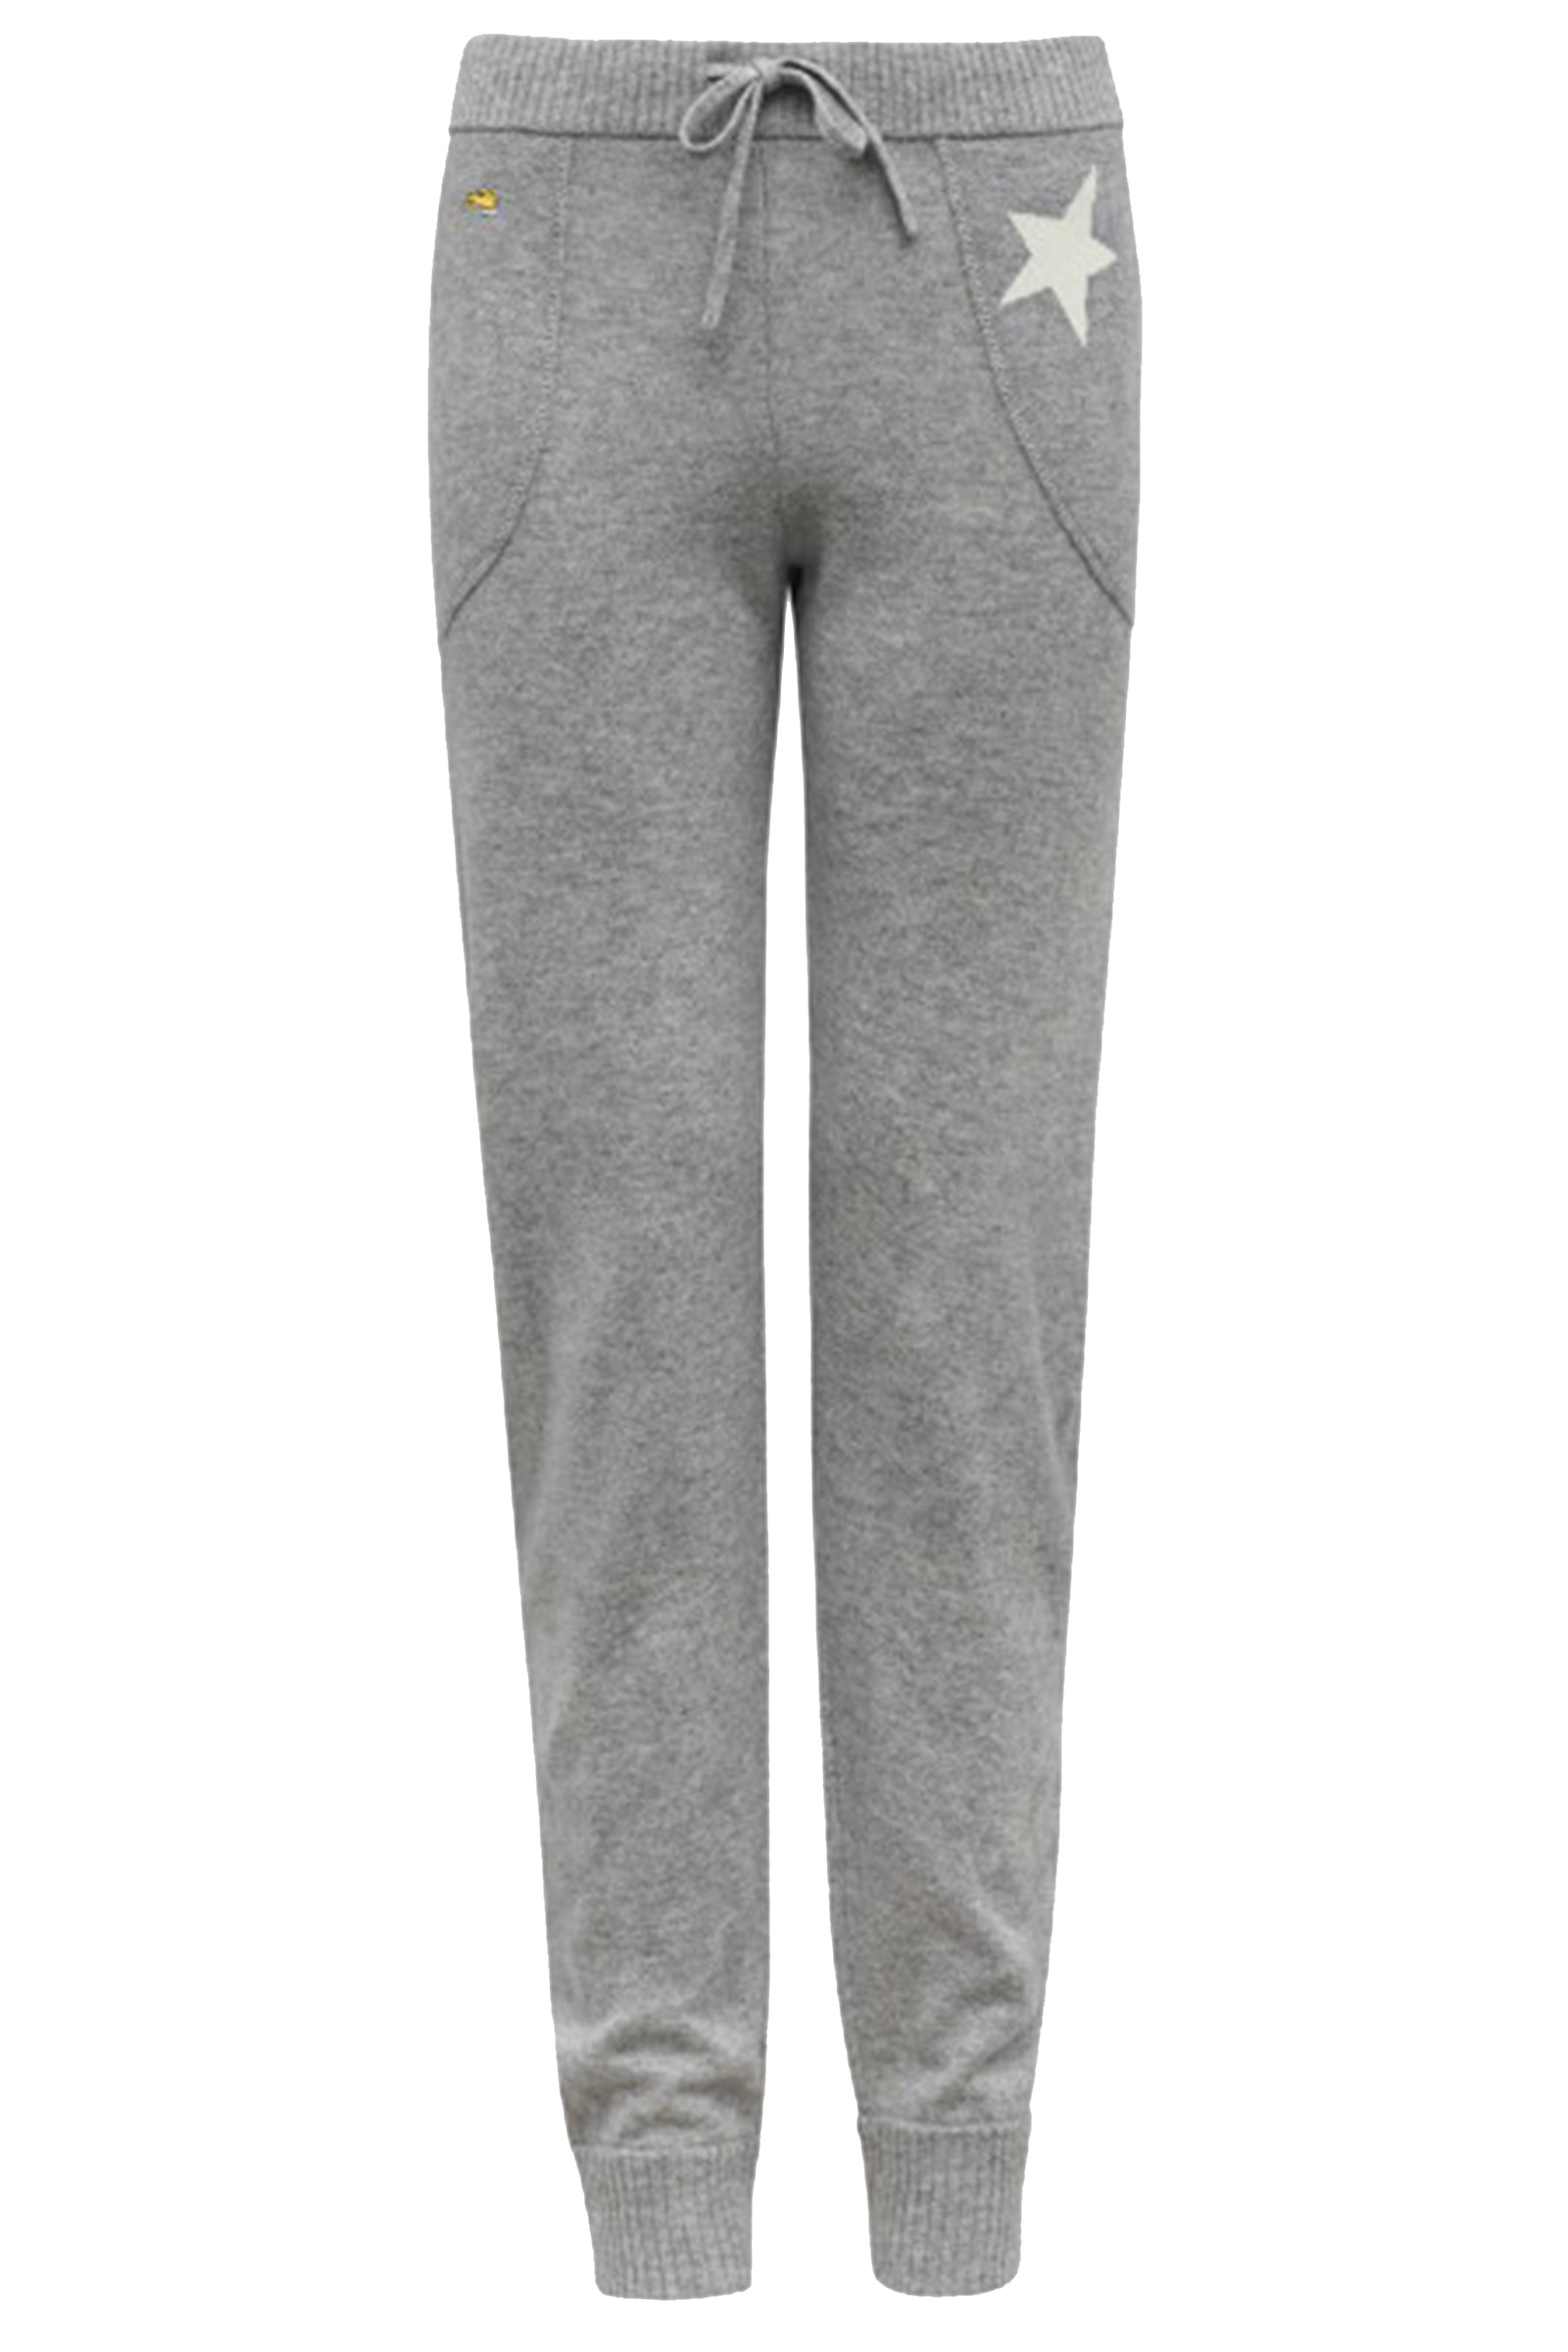 522134b818fa Bella Freud marl grey relaxed cashmere tracksuit bottoms